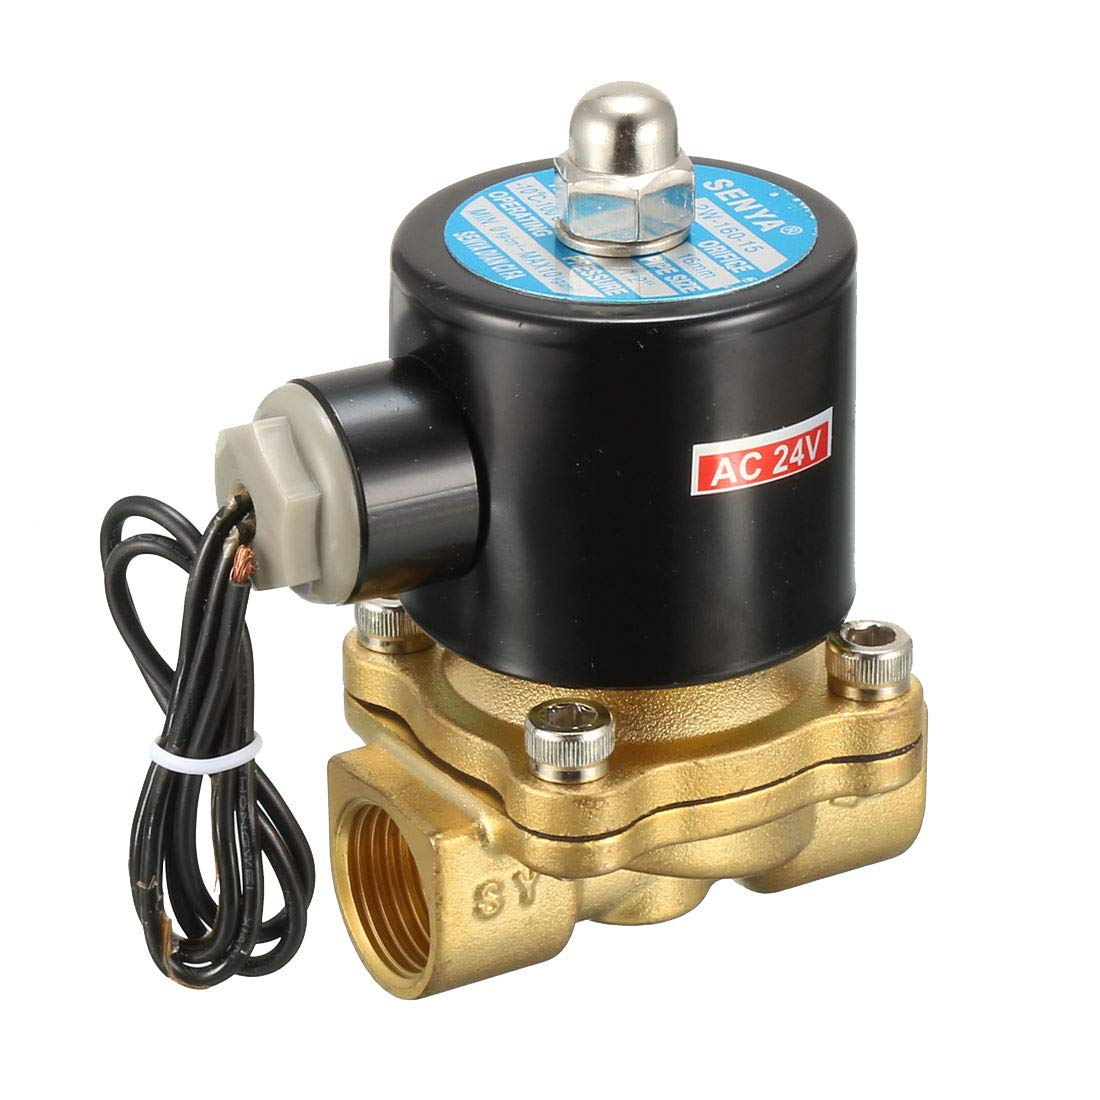 uxcell DC 12V 2W160-15 BSP 1//2 inches Normally Closed 2 Way N//C Brass Solenoid Valve for Water Air Gas Fuels